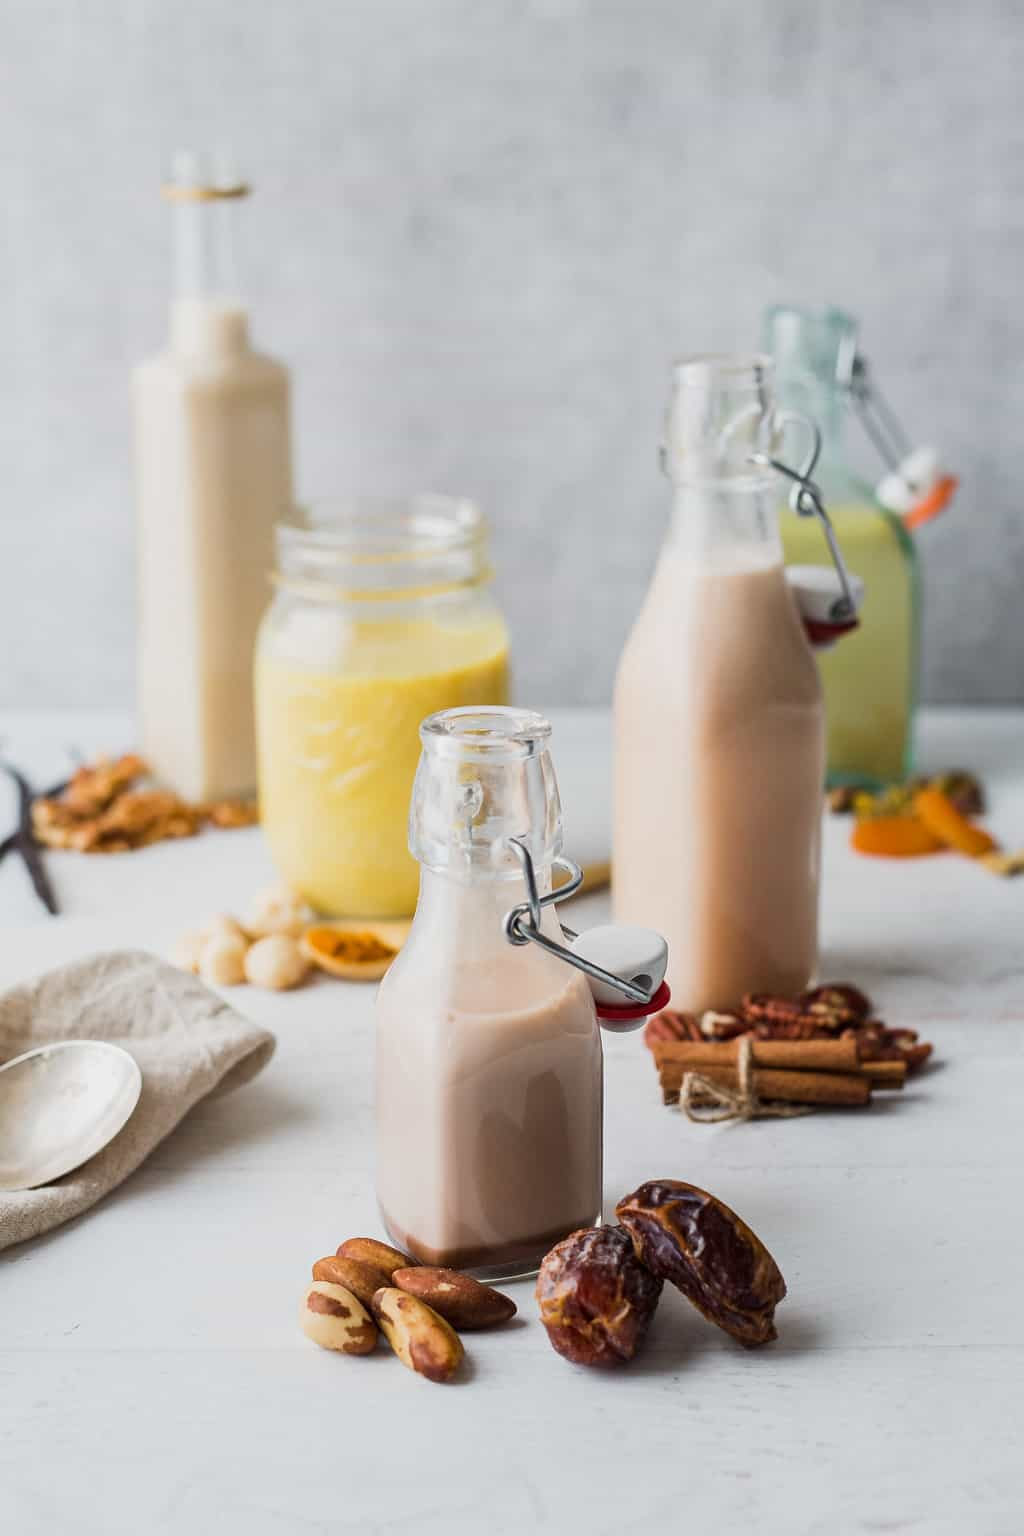 nut milks flavored with spices in jars and surrounded by the nuts they were made with